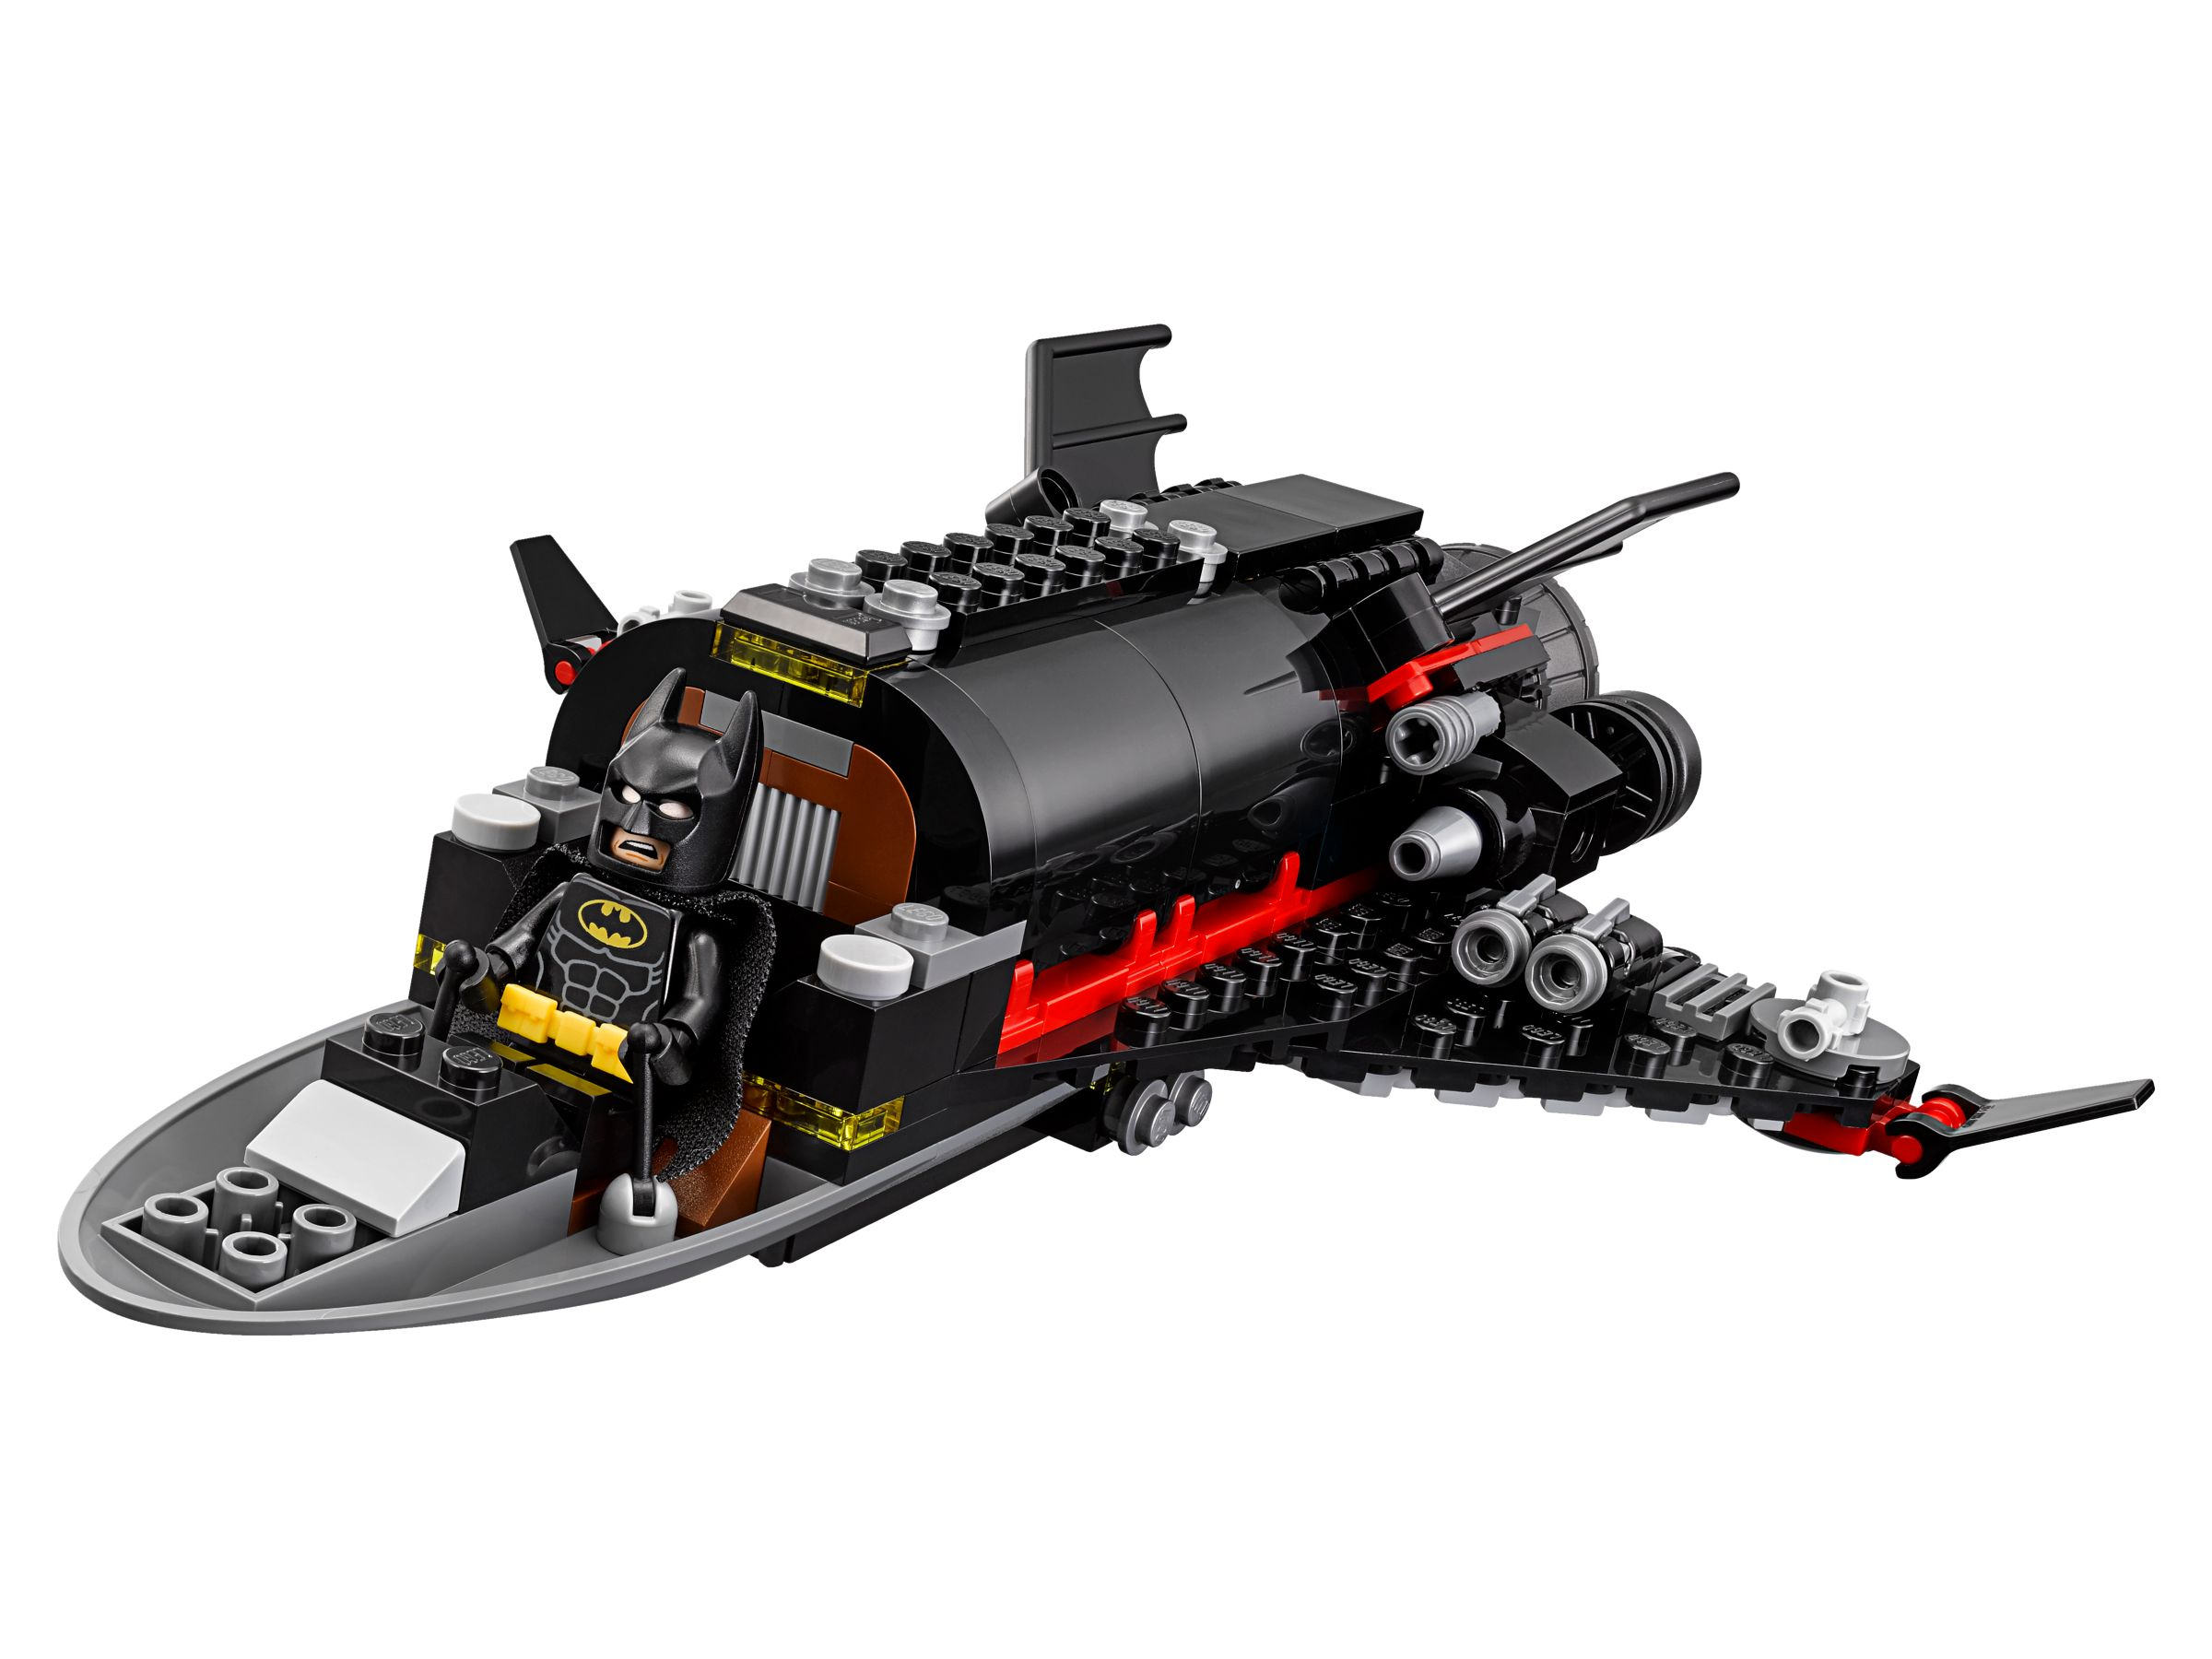 LEGO The LEGO Batman Movie 70923 Batman Spaceshuttle LEGO_70923_alt4.jpg